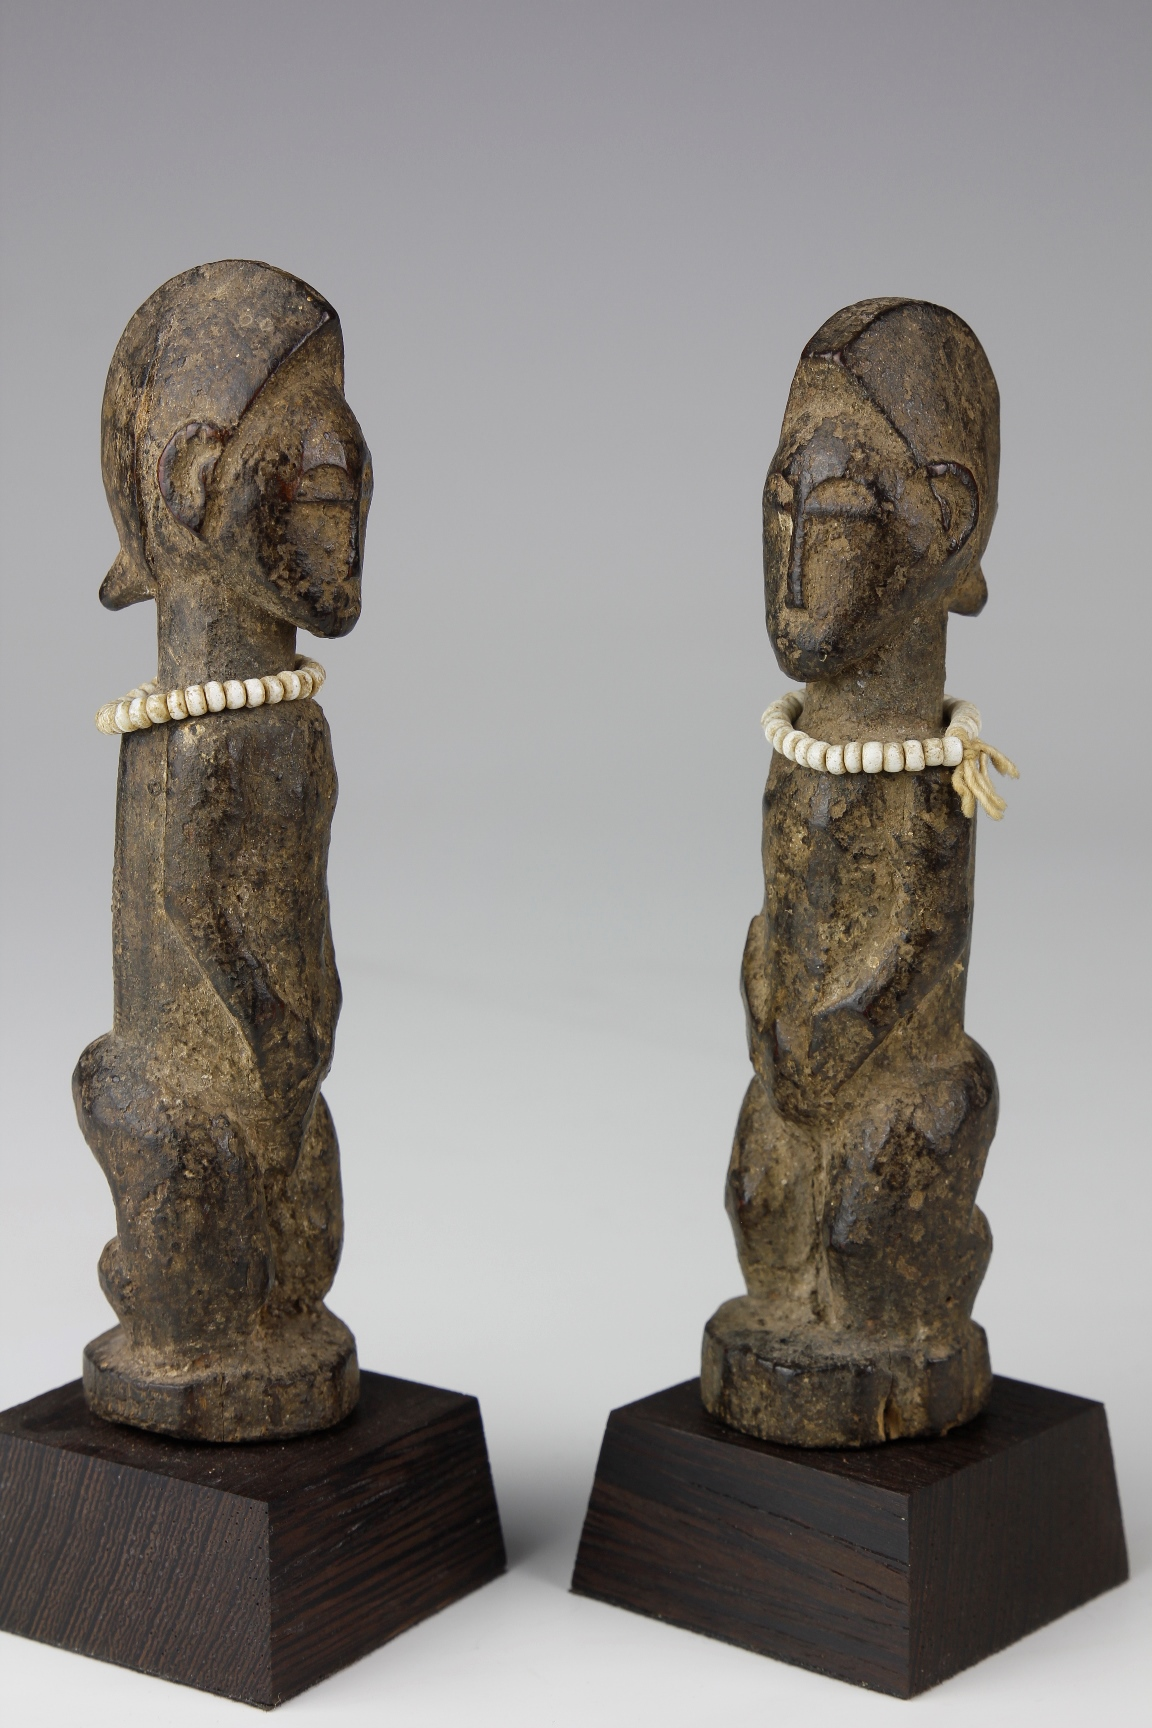 Pair of Small Figures - SOLD